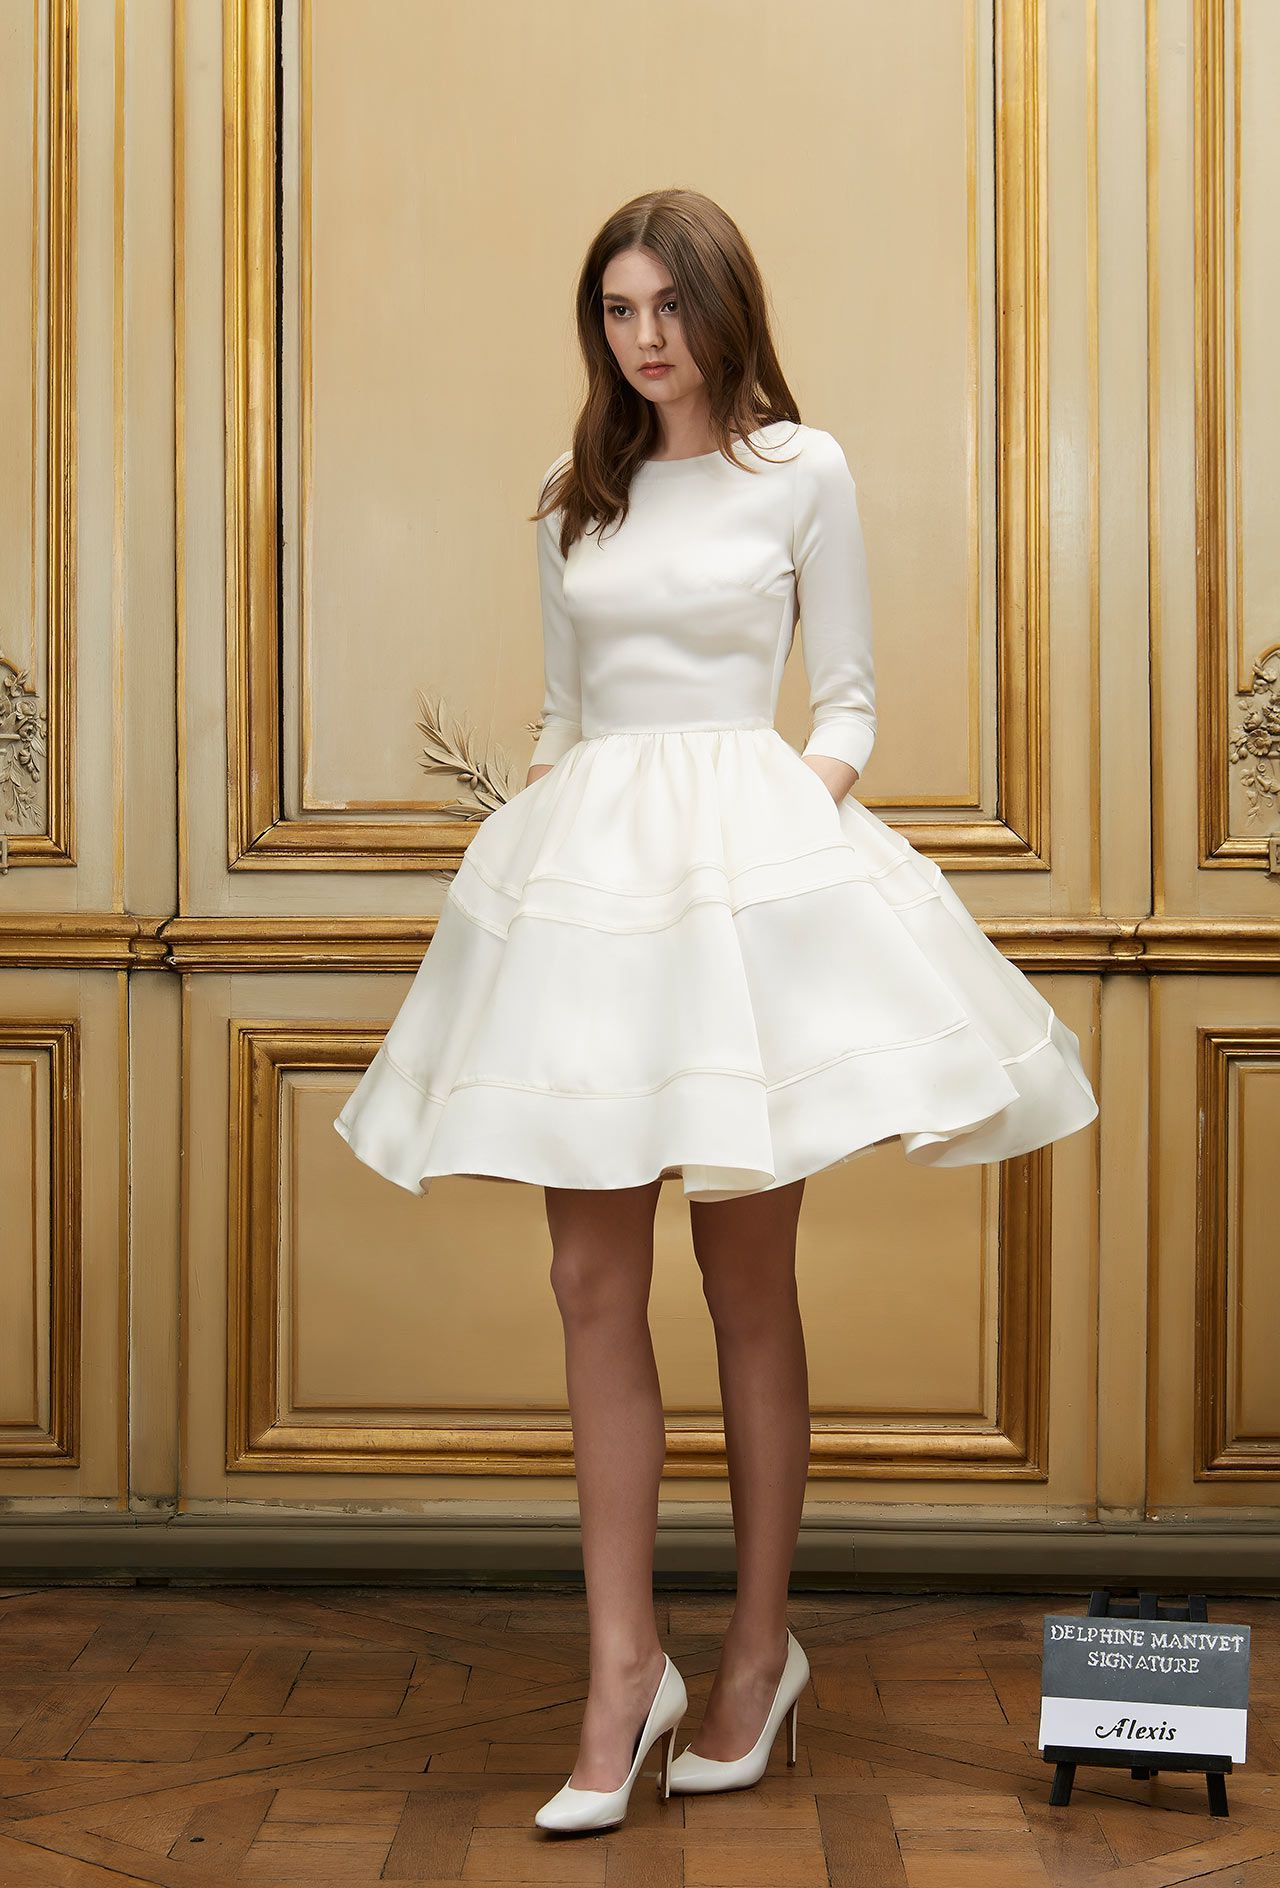 Courthouse wedding dress plus size  Pin by ruthie dibble on Wedding Dresses  Pinterest  Wedding dress